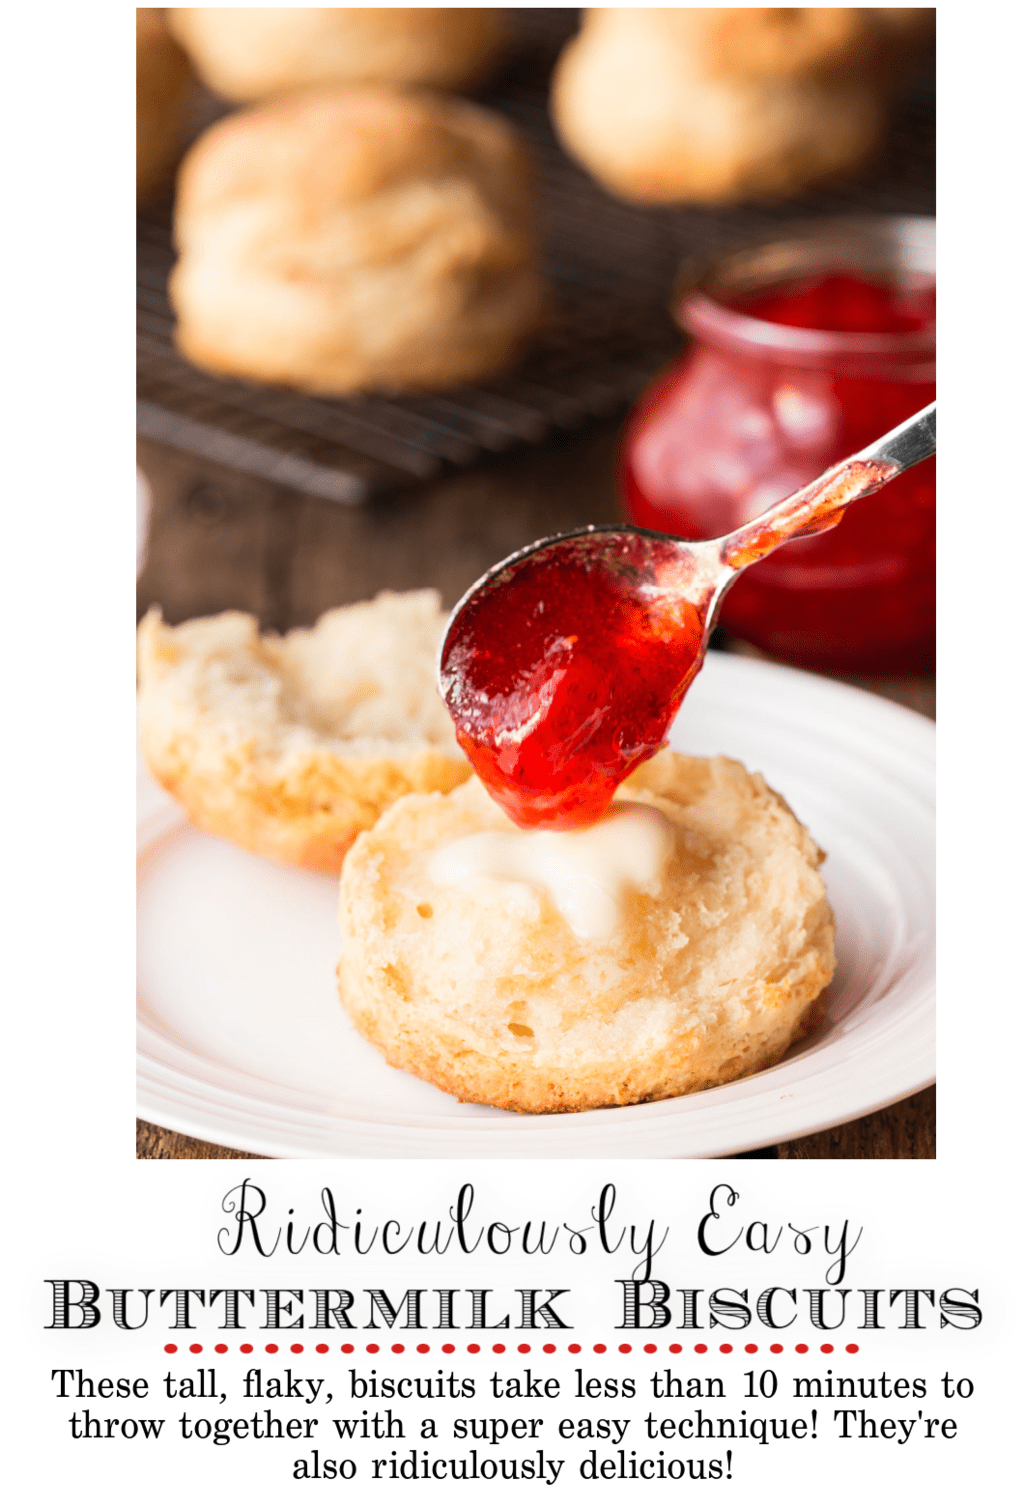 Ridiculously Easy Buttermilk Biscuits